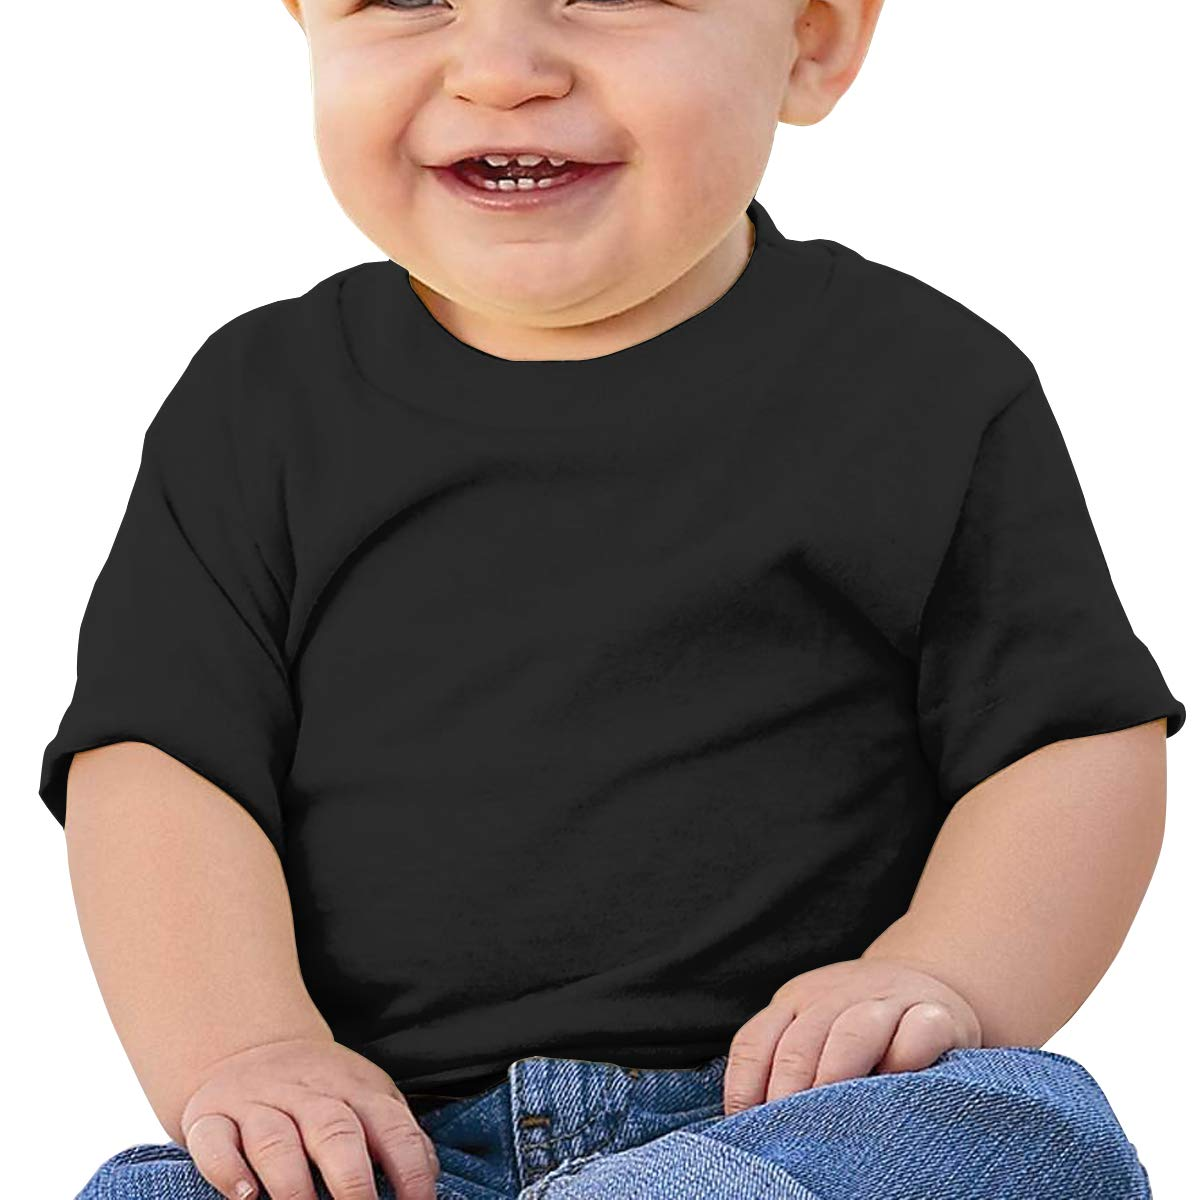 Today is The Perfect Day Toddler Short-Sleeve Tee for Boy Girl Infant Kids T-Shirt On Newborn 6-18 Months